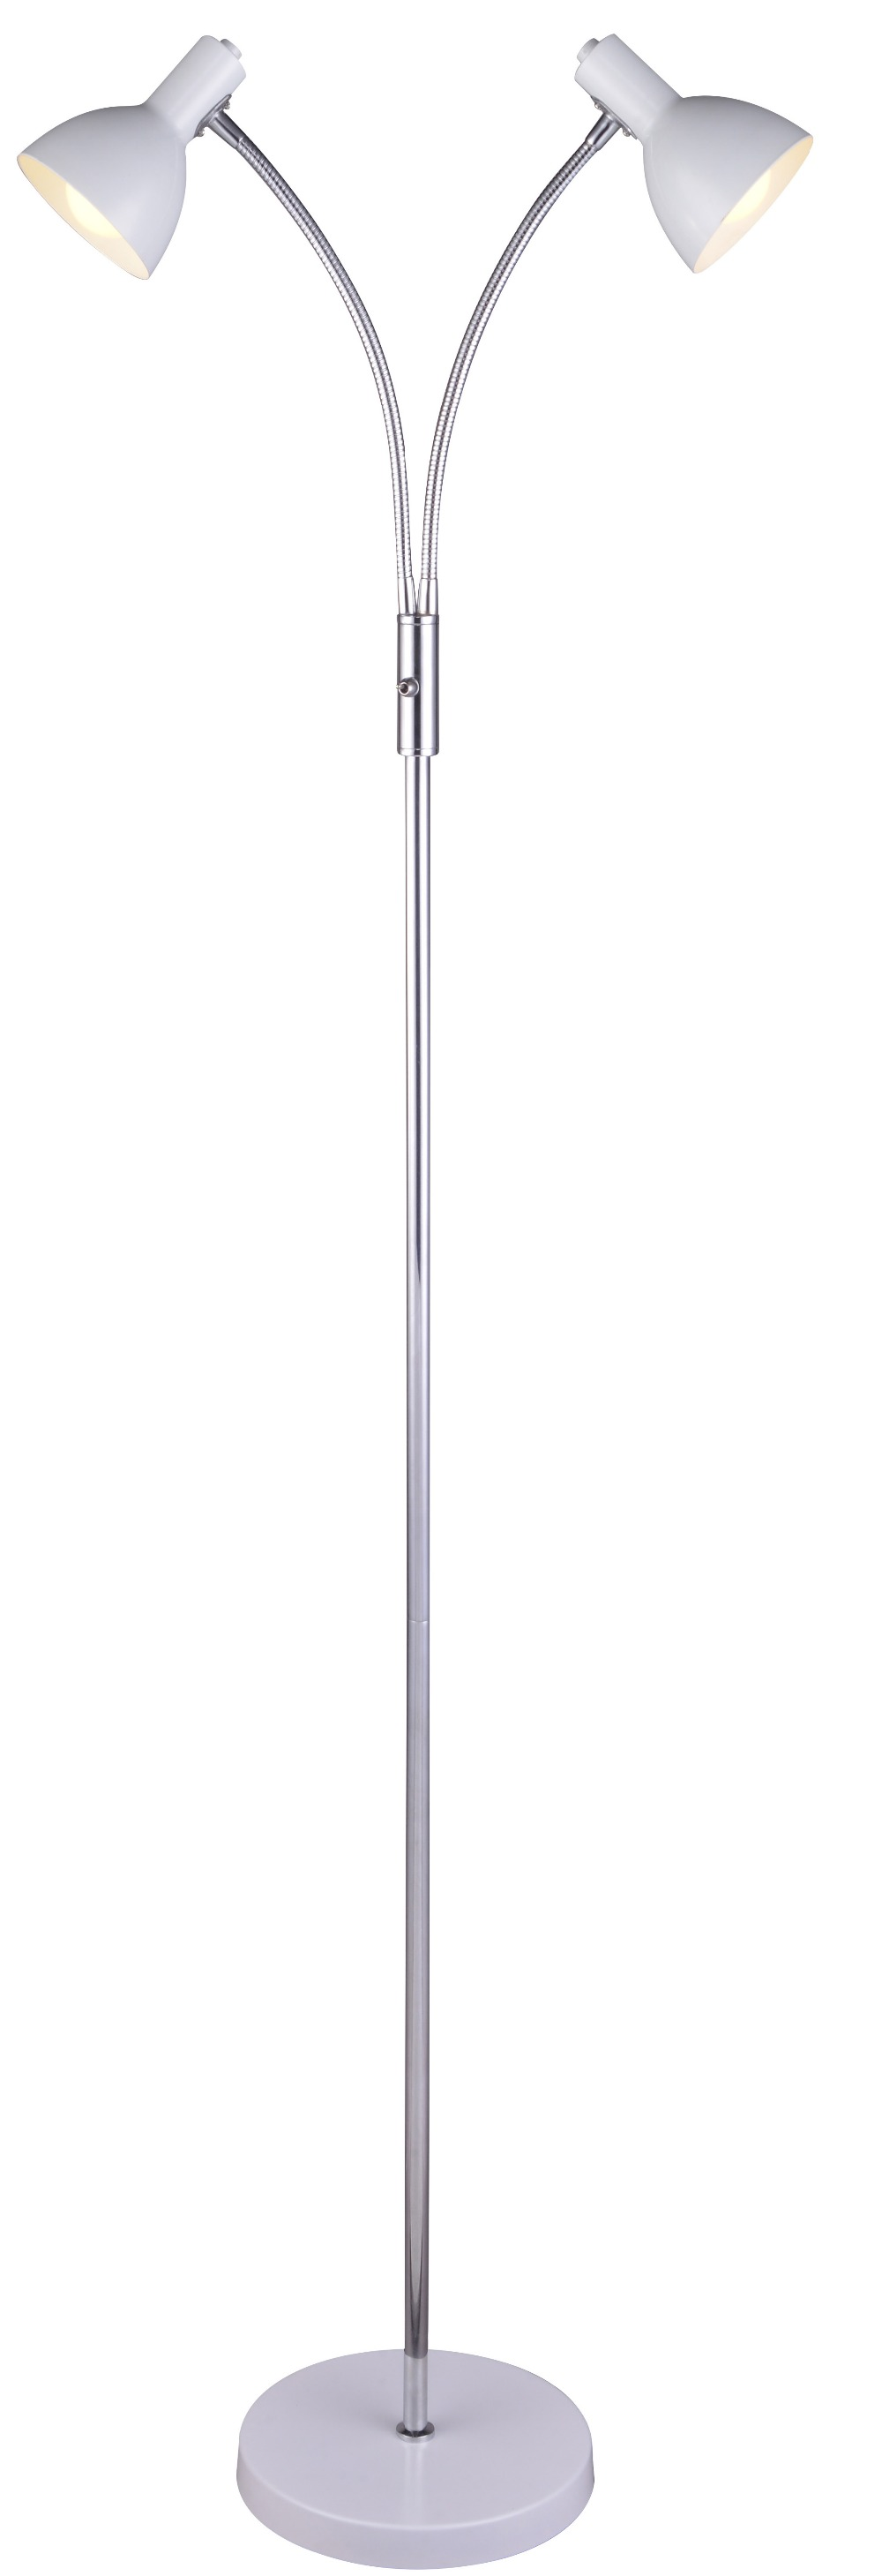 Floor lamp with two head